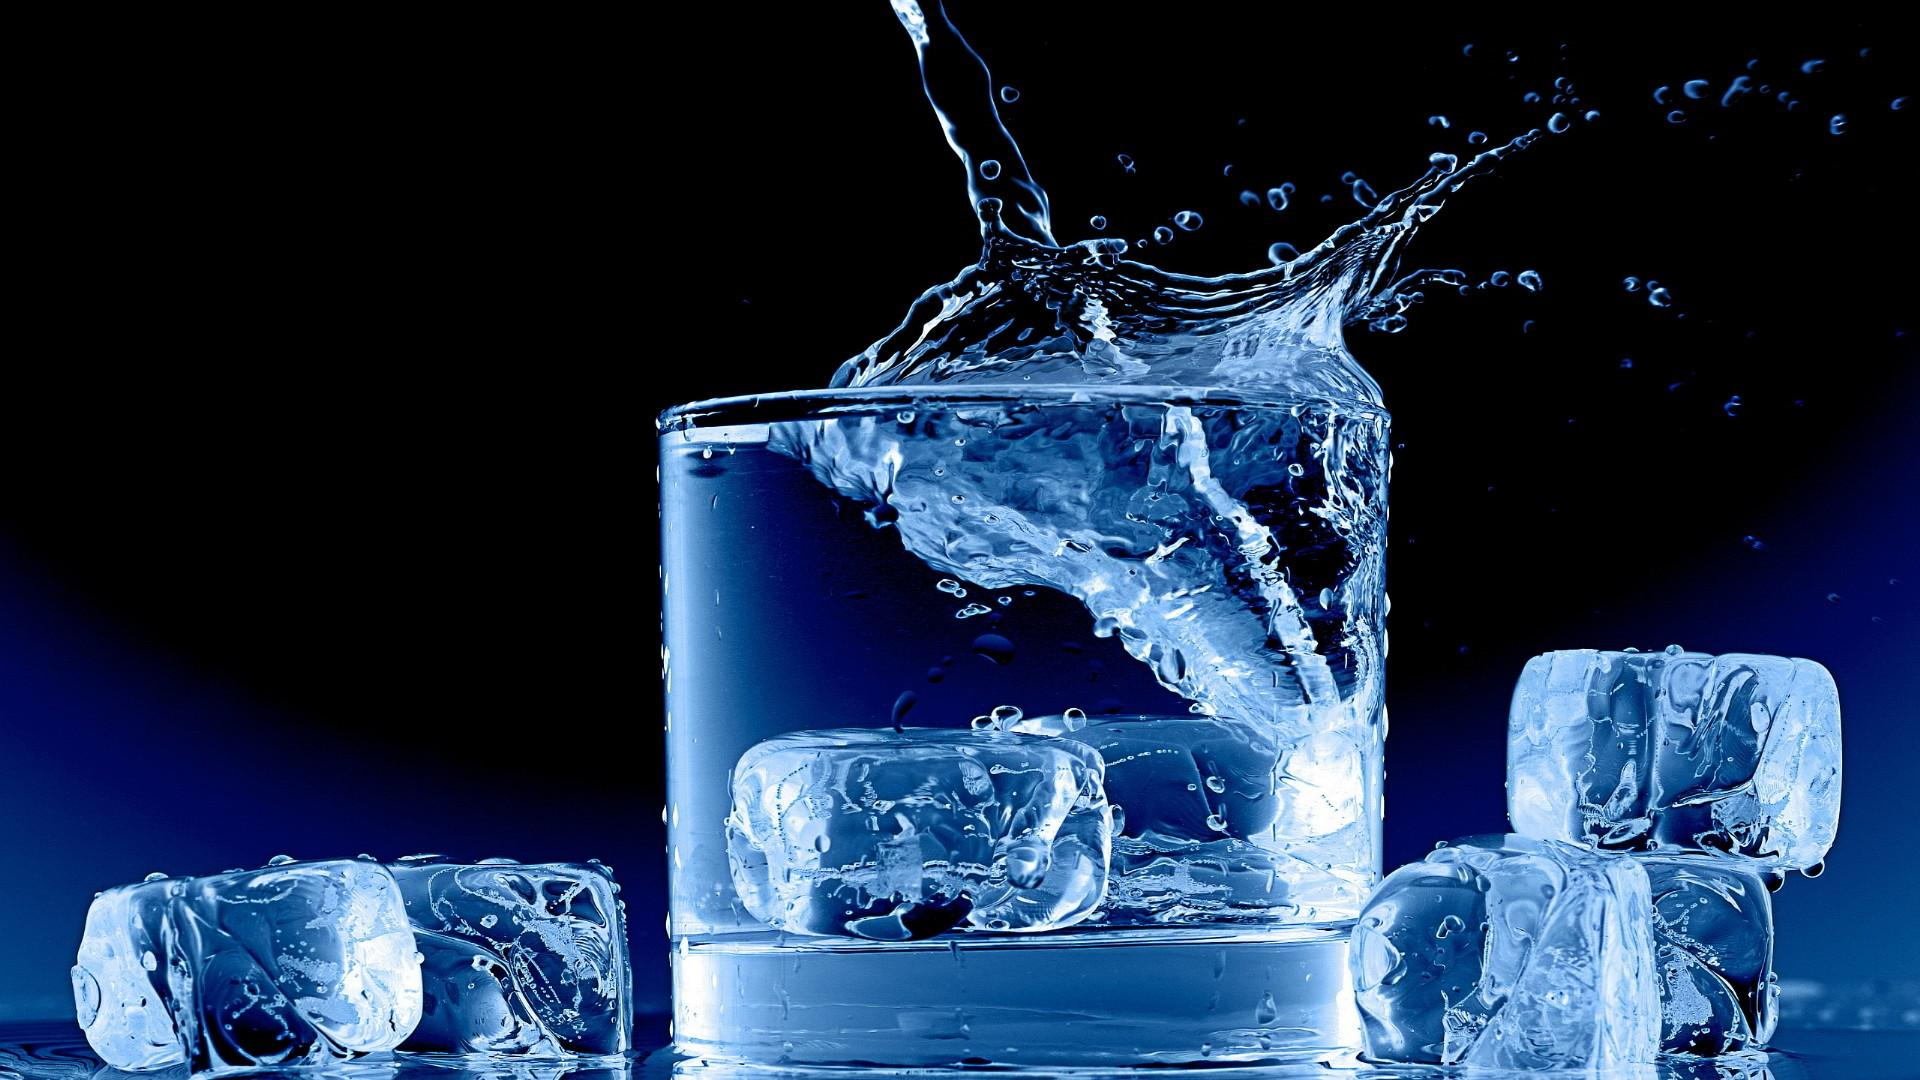 Ice Cubes Wallpaper And Background Image